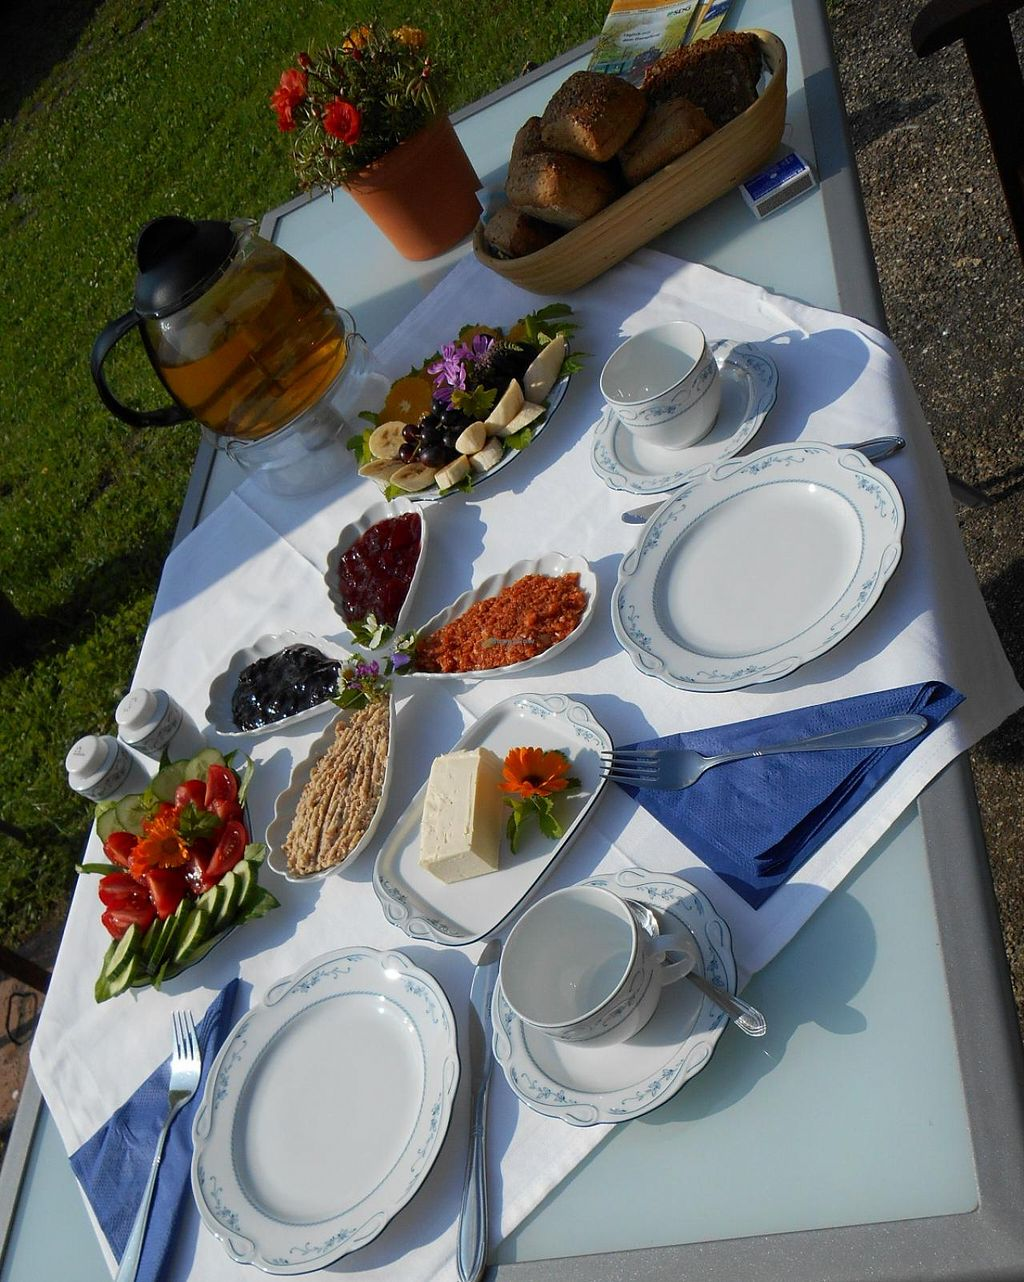 "Photo of Hof Friedensland  by <a href=""/members/profile/AchimGuldner"">AchimGuldner</a> <br/>Breakfast in the courtyard of Hof Friedensland. Delicious! <br/> May 22, 2015  - <a href='/contact/abuse/image/47087/103048'>Report</a>"